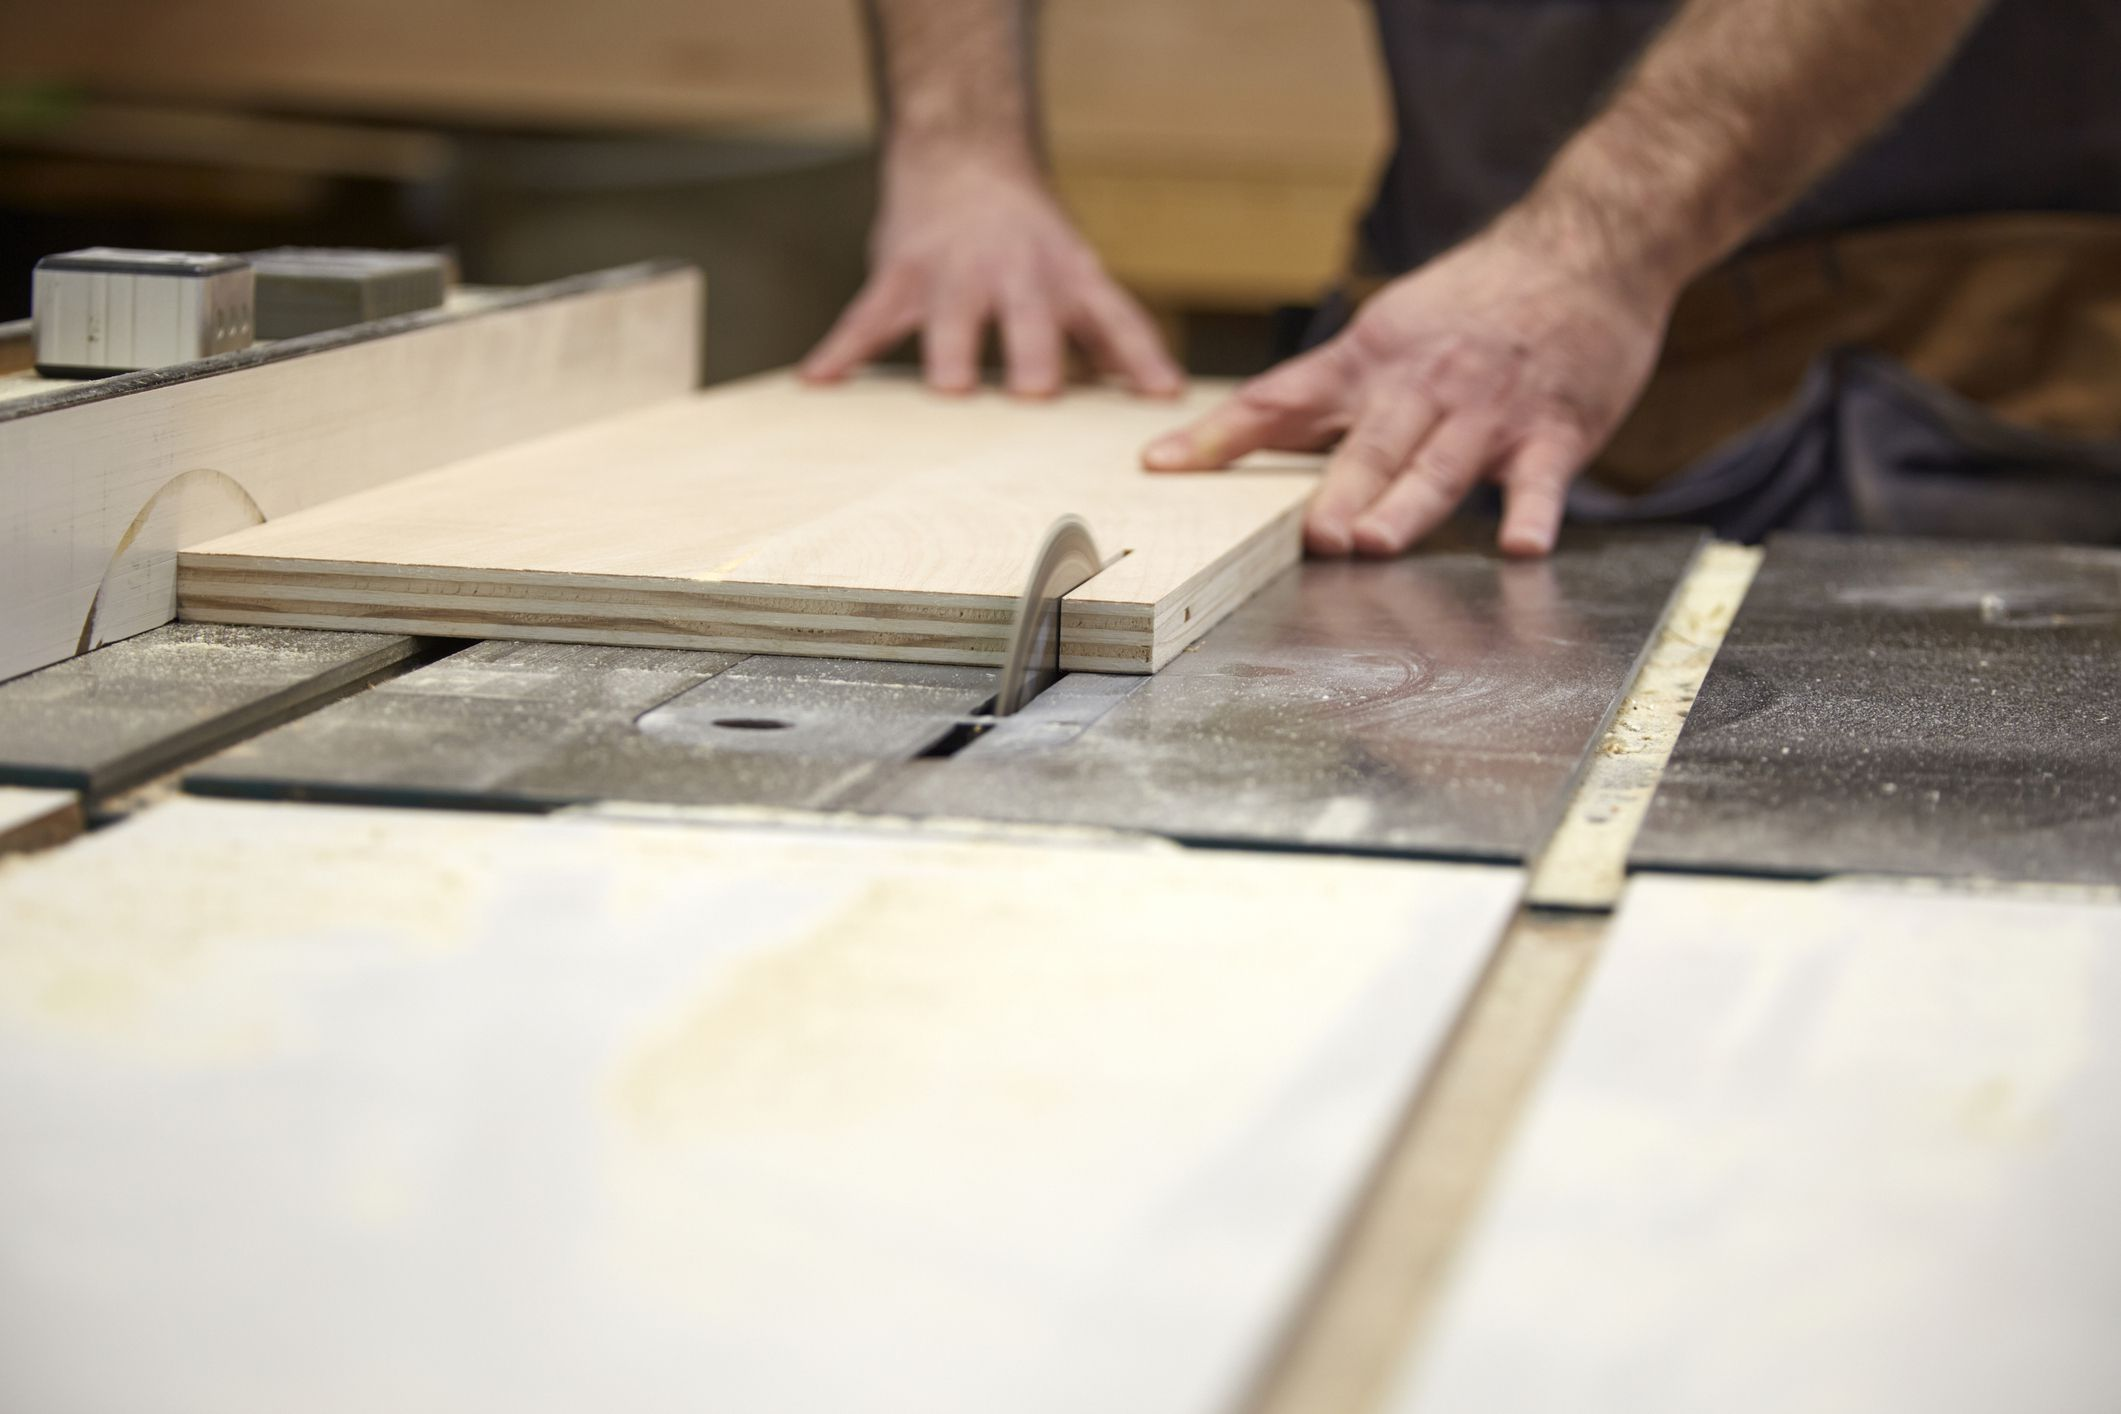 Will a Stacked Dado Blade Fit on Your Table Saw